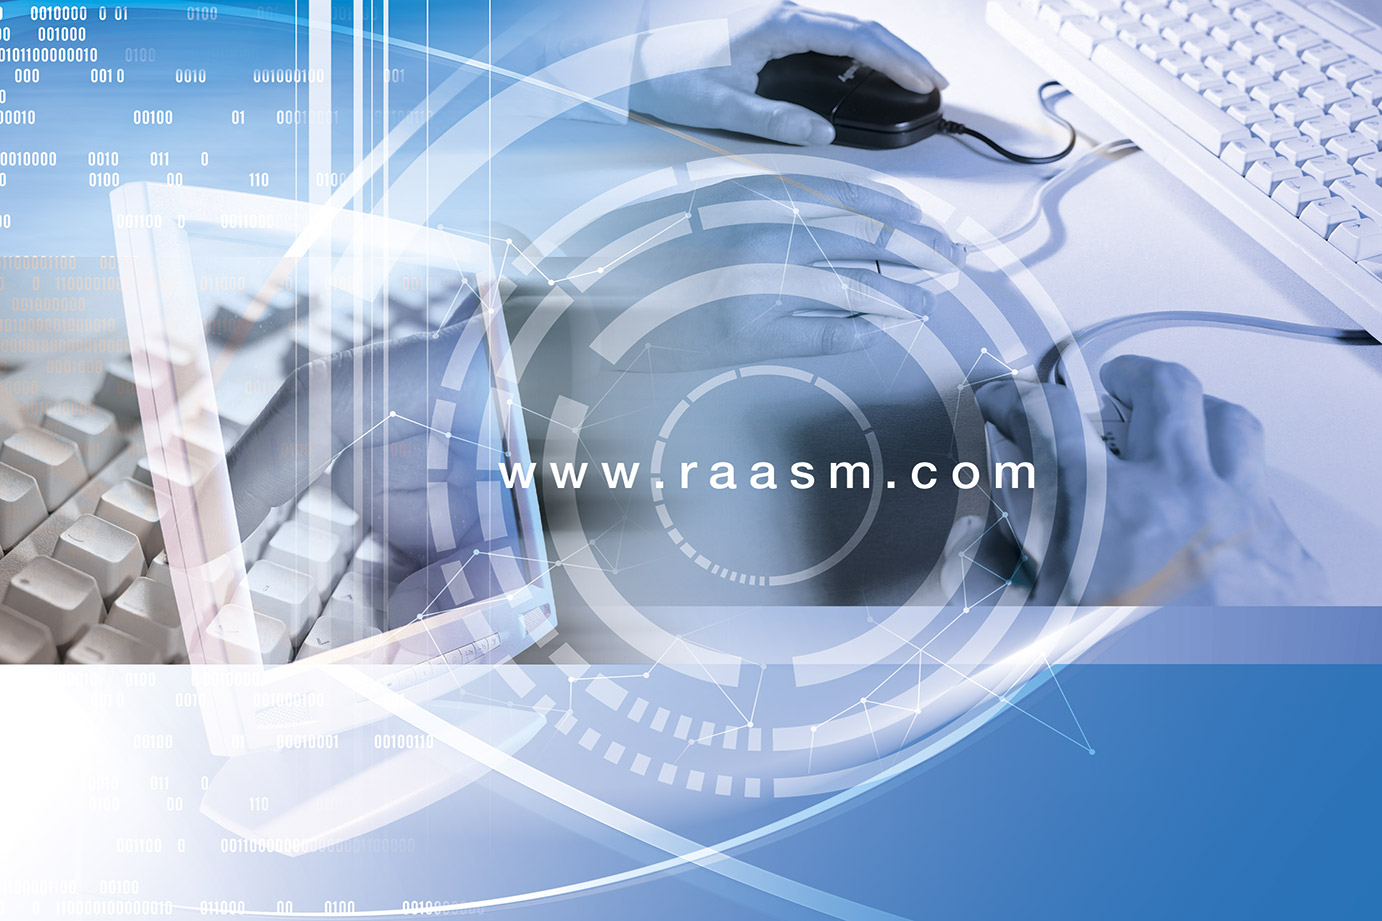 THE NEW RAASM WEBSITE